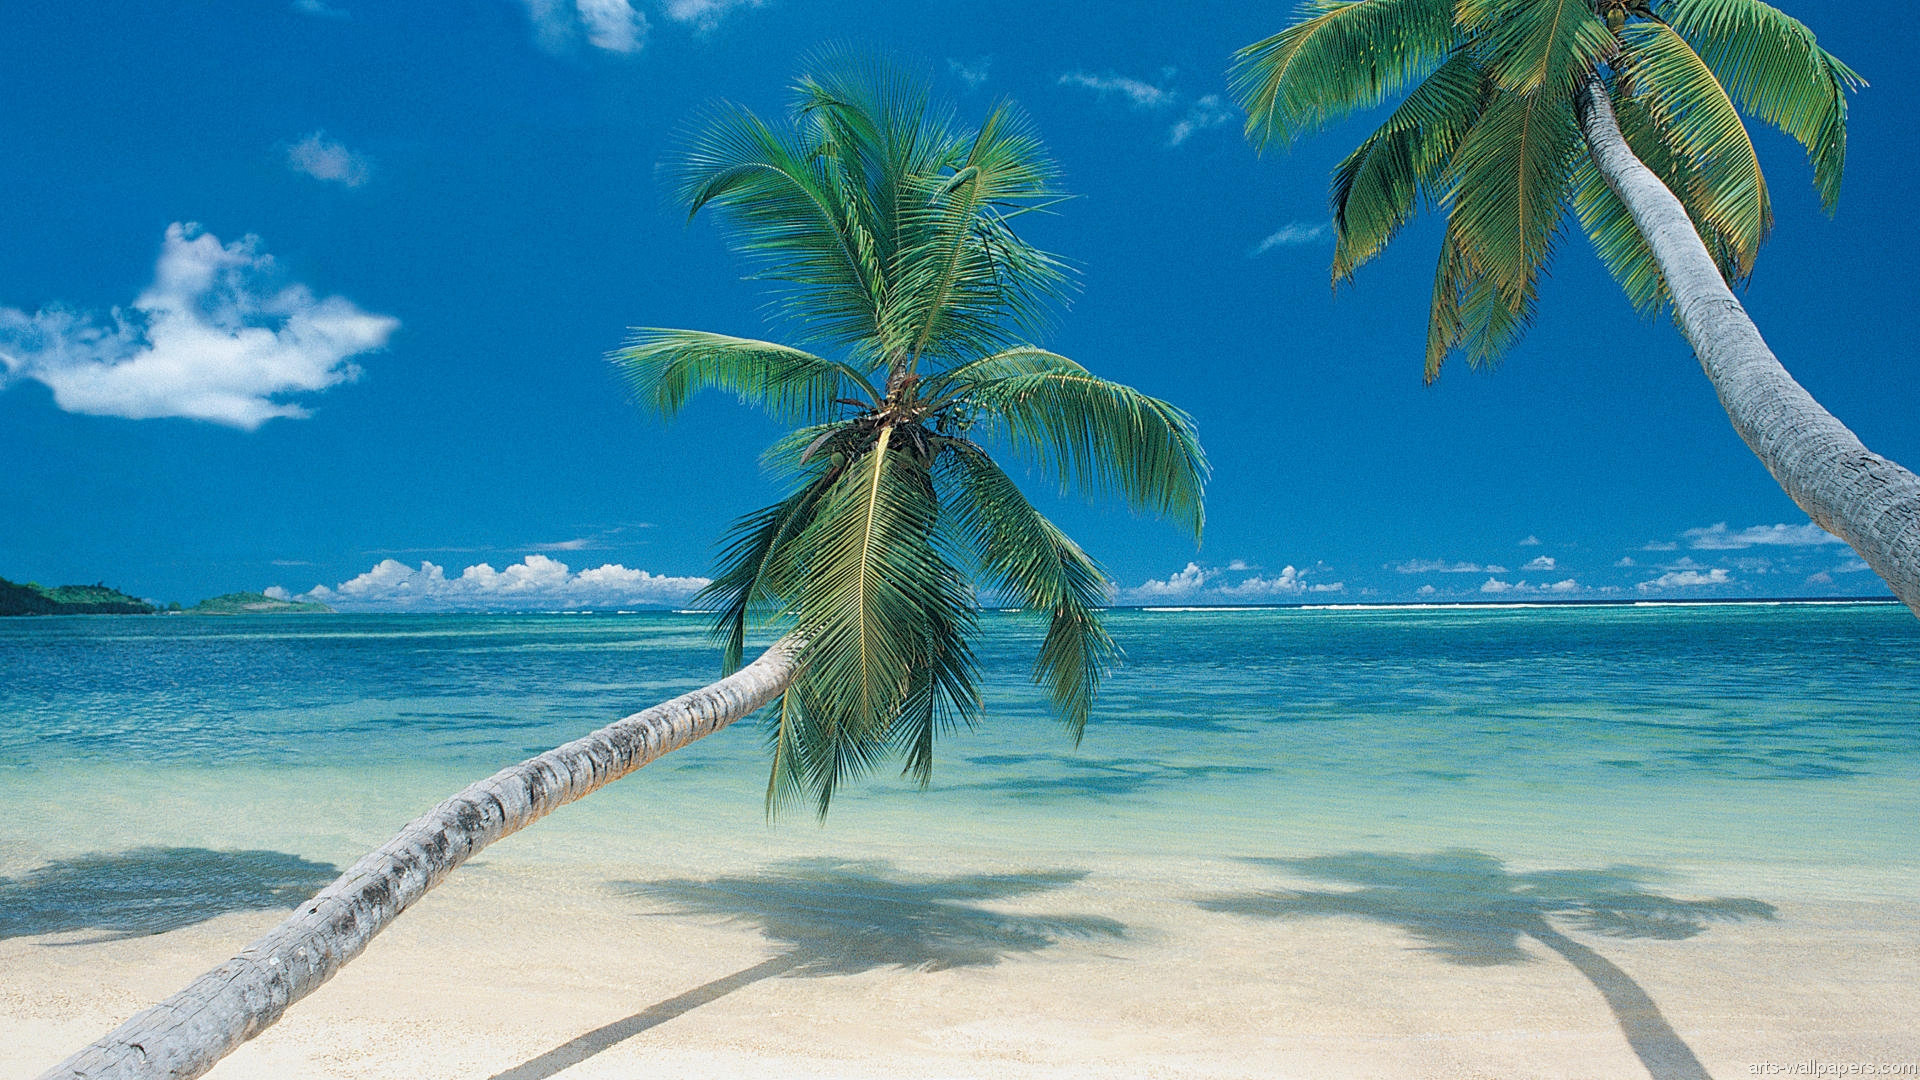 Tropical Beach Paradise Wallpapers Photos Images Pictures 1920x1080